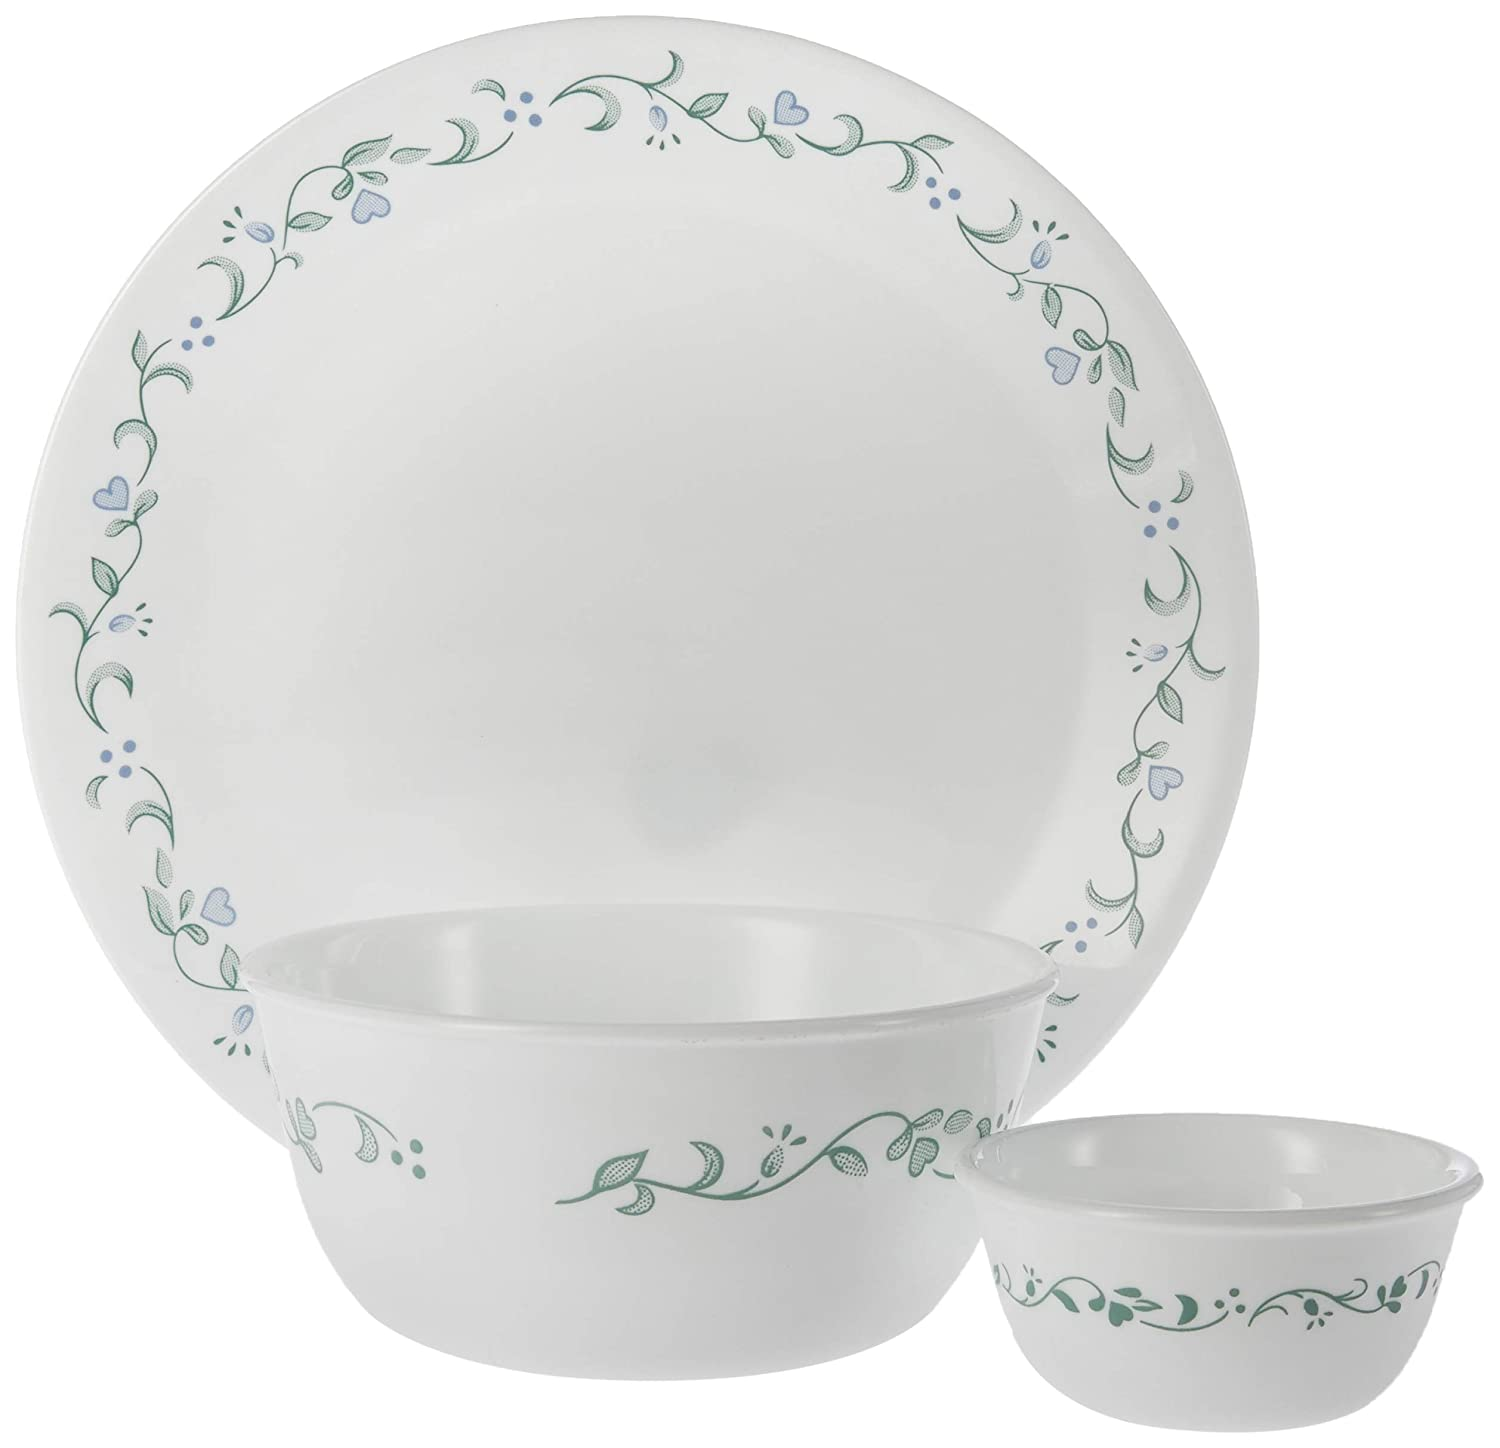 Corell 6018487 CCG 8.5 Inch Livingware Country Cottage Luncheon Plate CORELLE